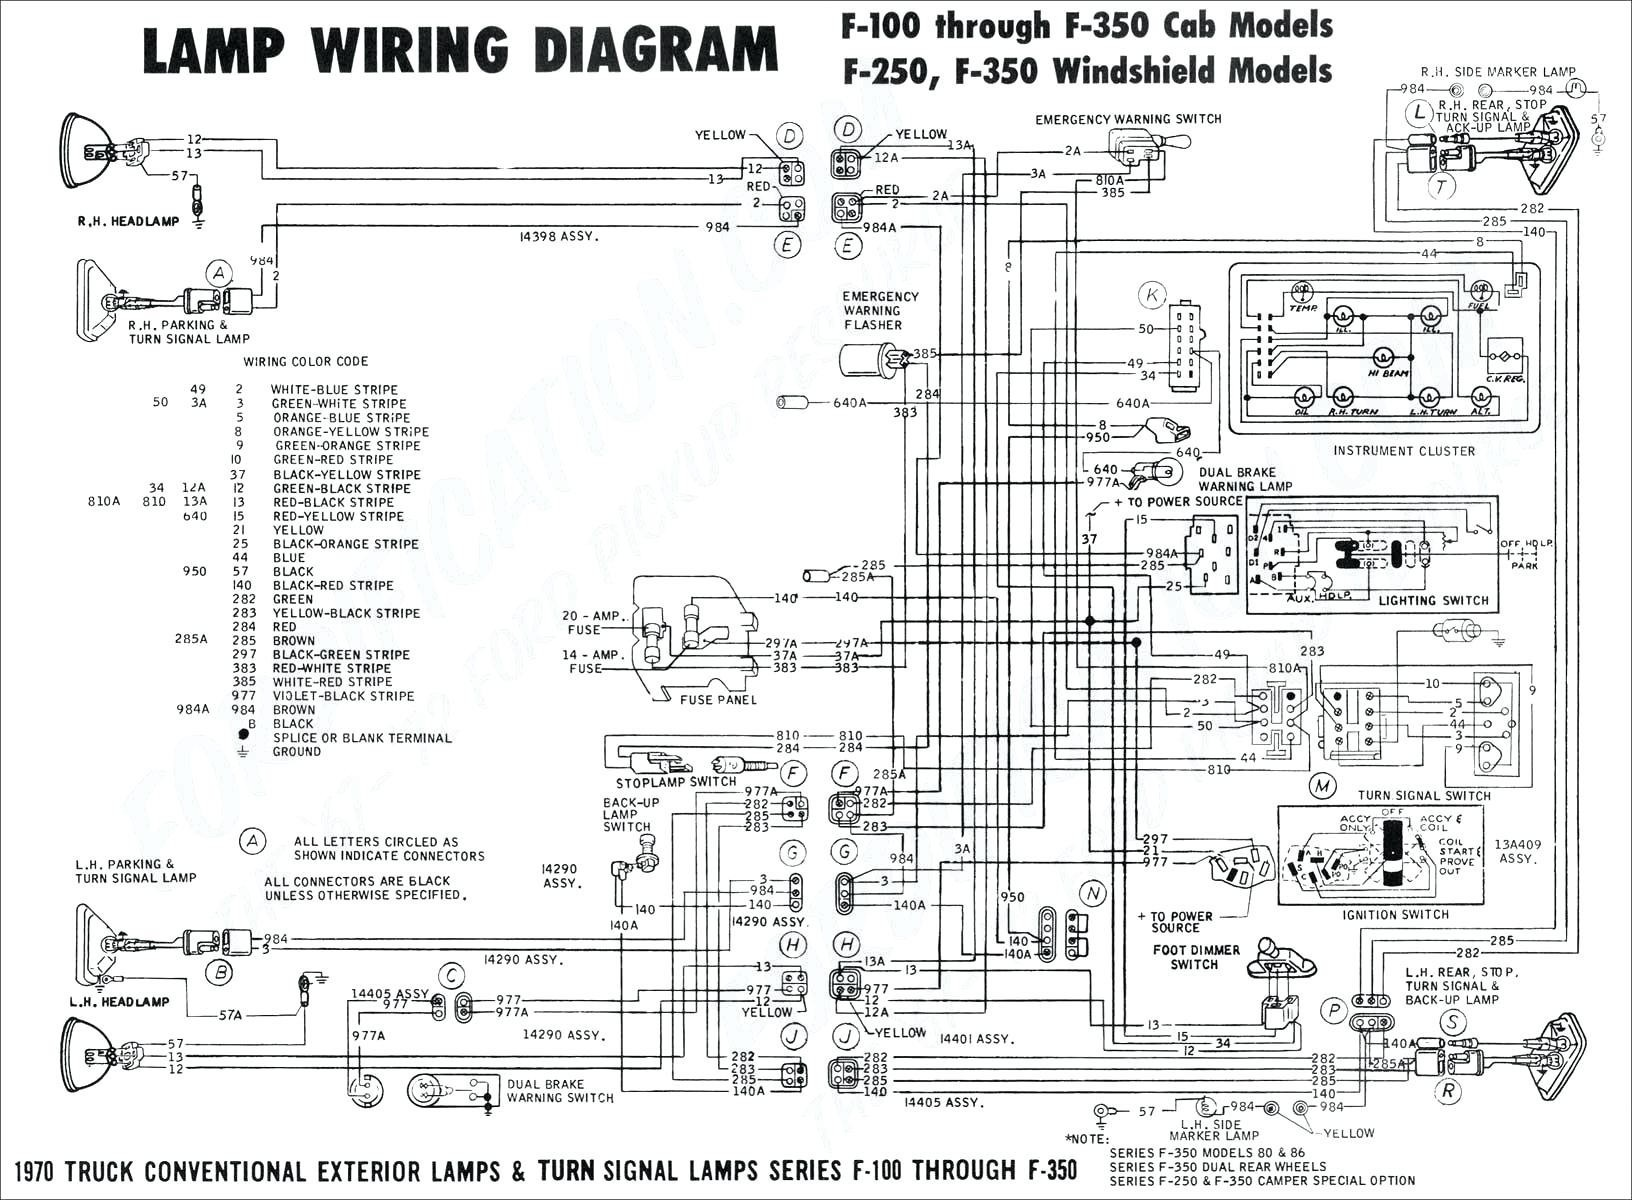 Ford F150 Tail Light Wiring Diagram Wiring Diagram for Automotive Lights New Stop Turn Tail Light Wiring Of Ford F150 Tail Light Wiring Diagram Wiring Diagram Rj45 Archives Joescablecar